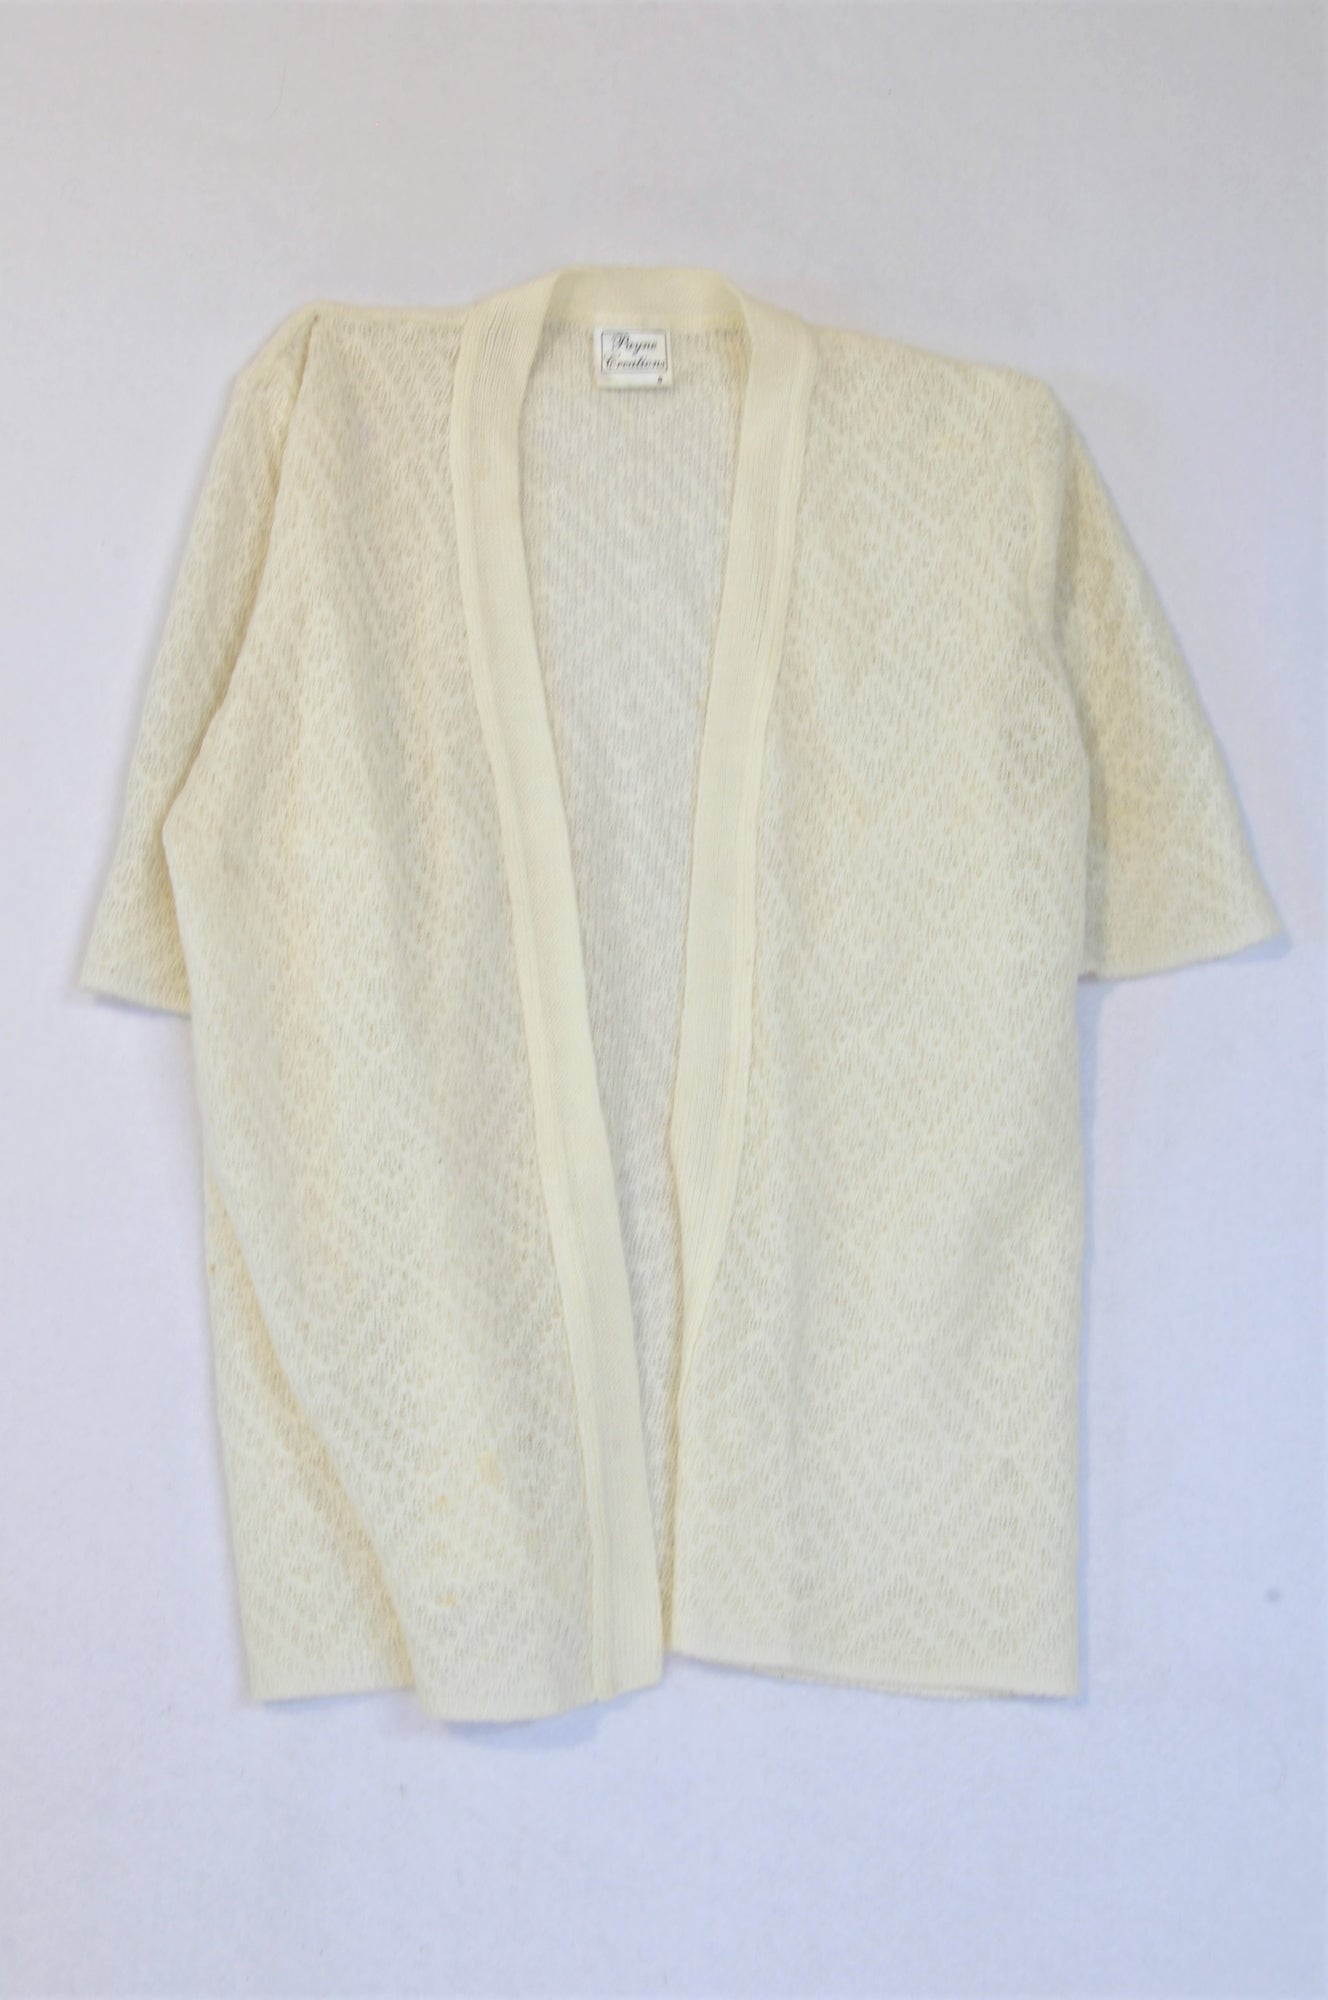 Payne Creations Ivory Knit Cardigan Women Size S